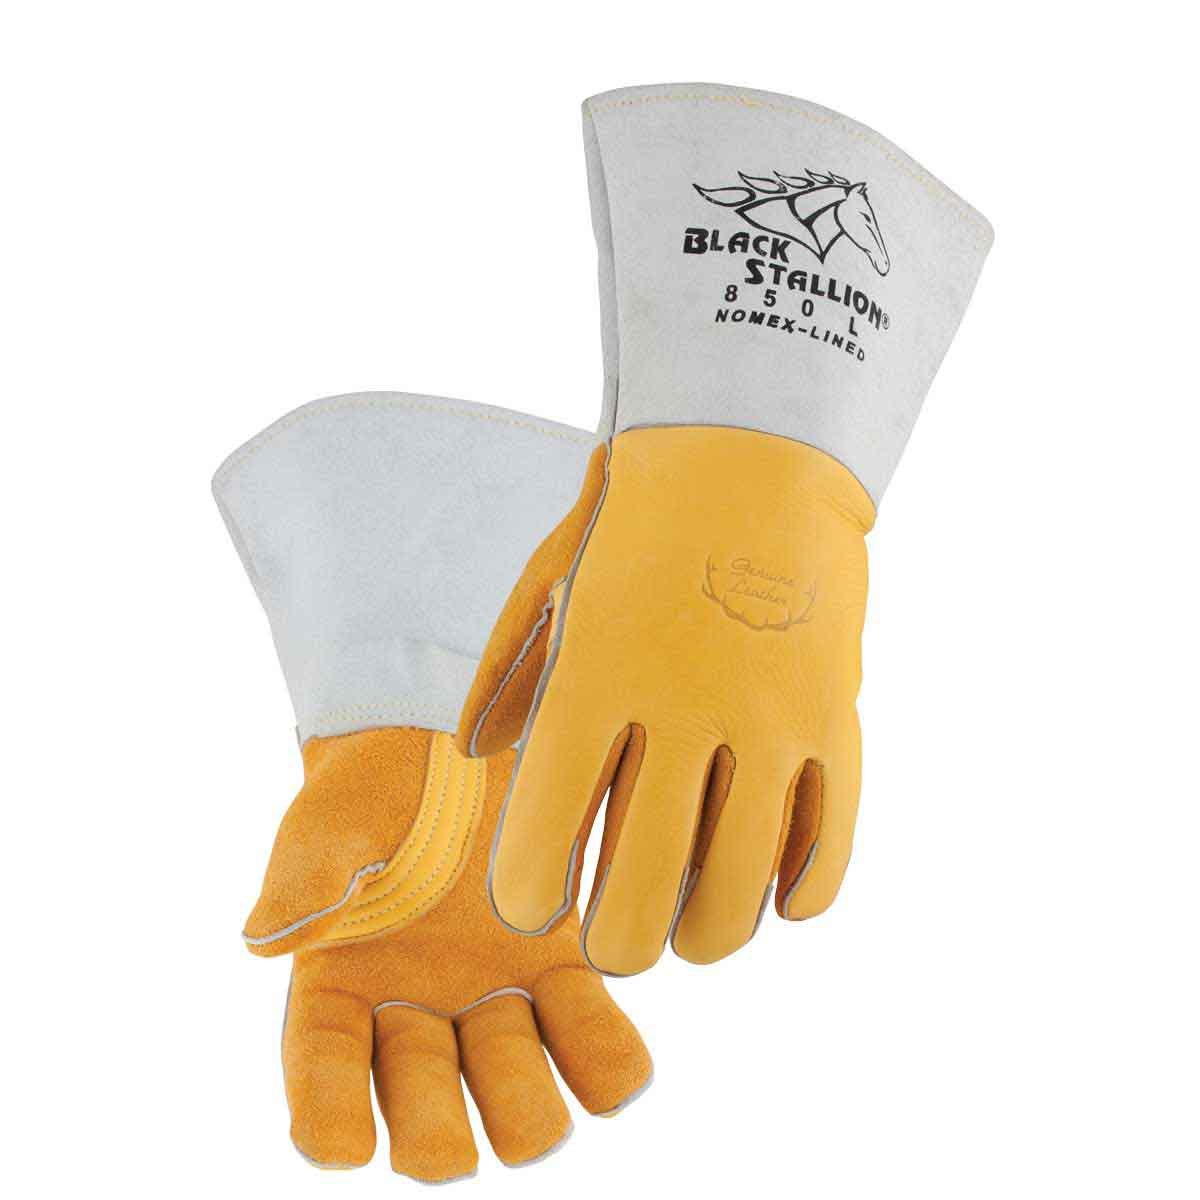 Black Stallion 850 Premium Grain Elkskin Stick Welding Gloves, Small